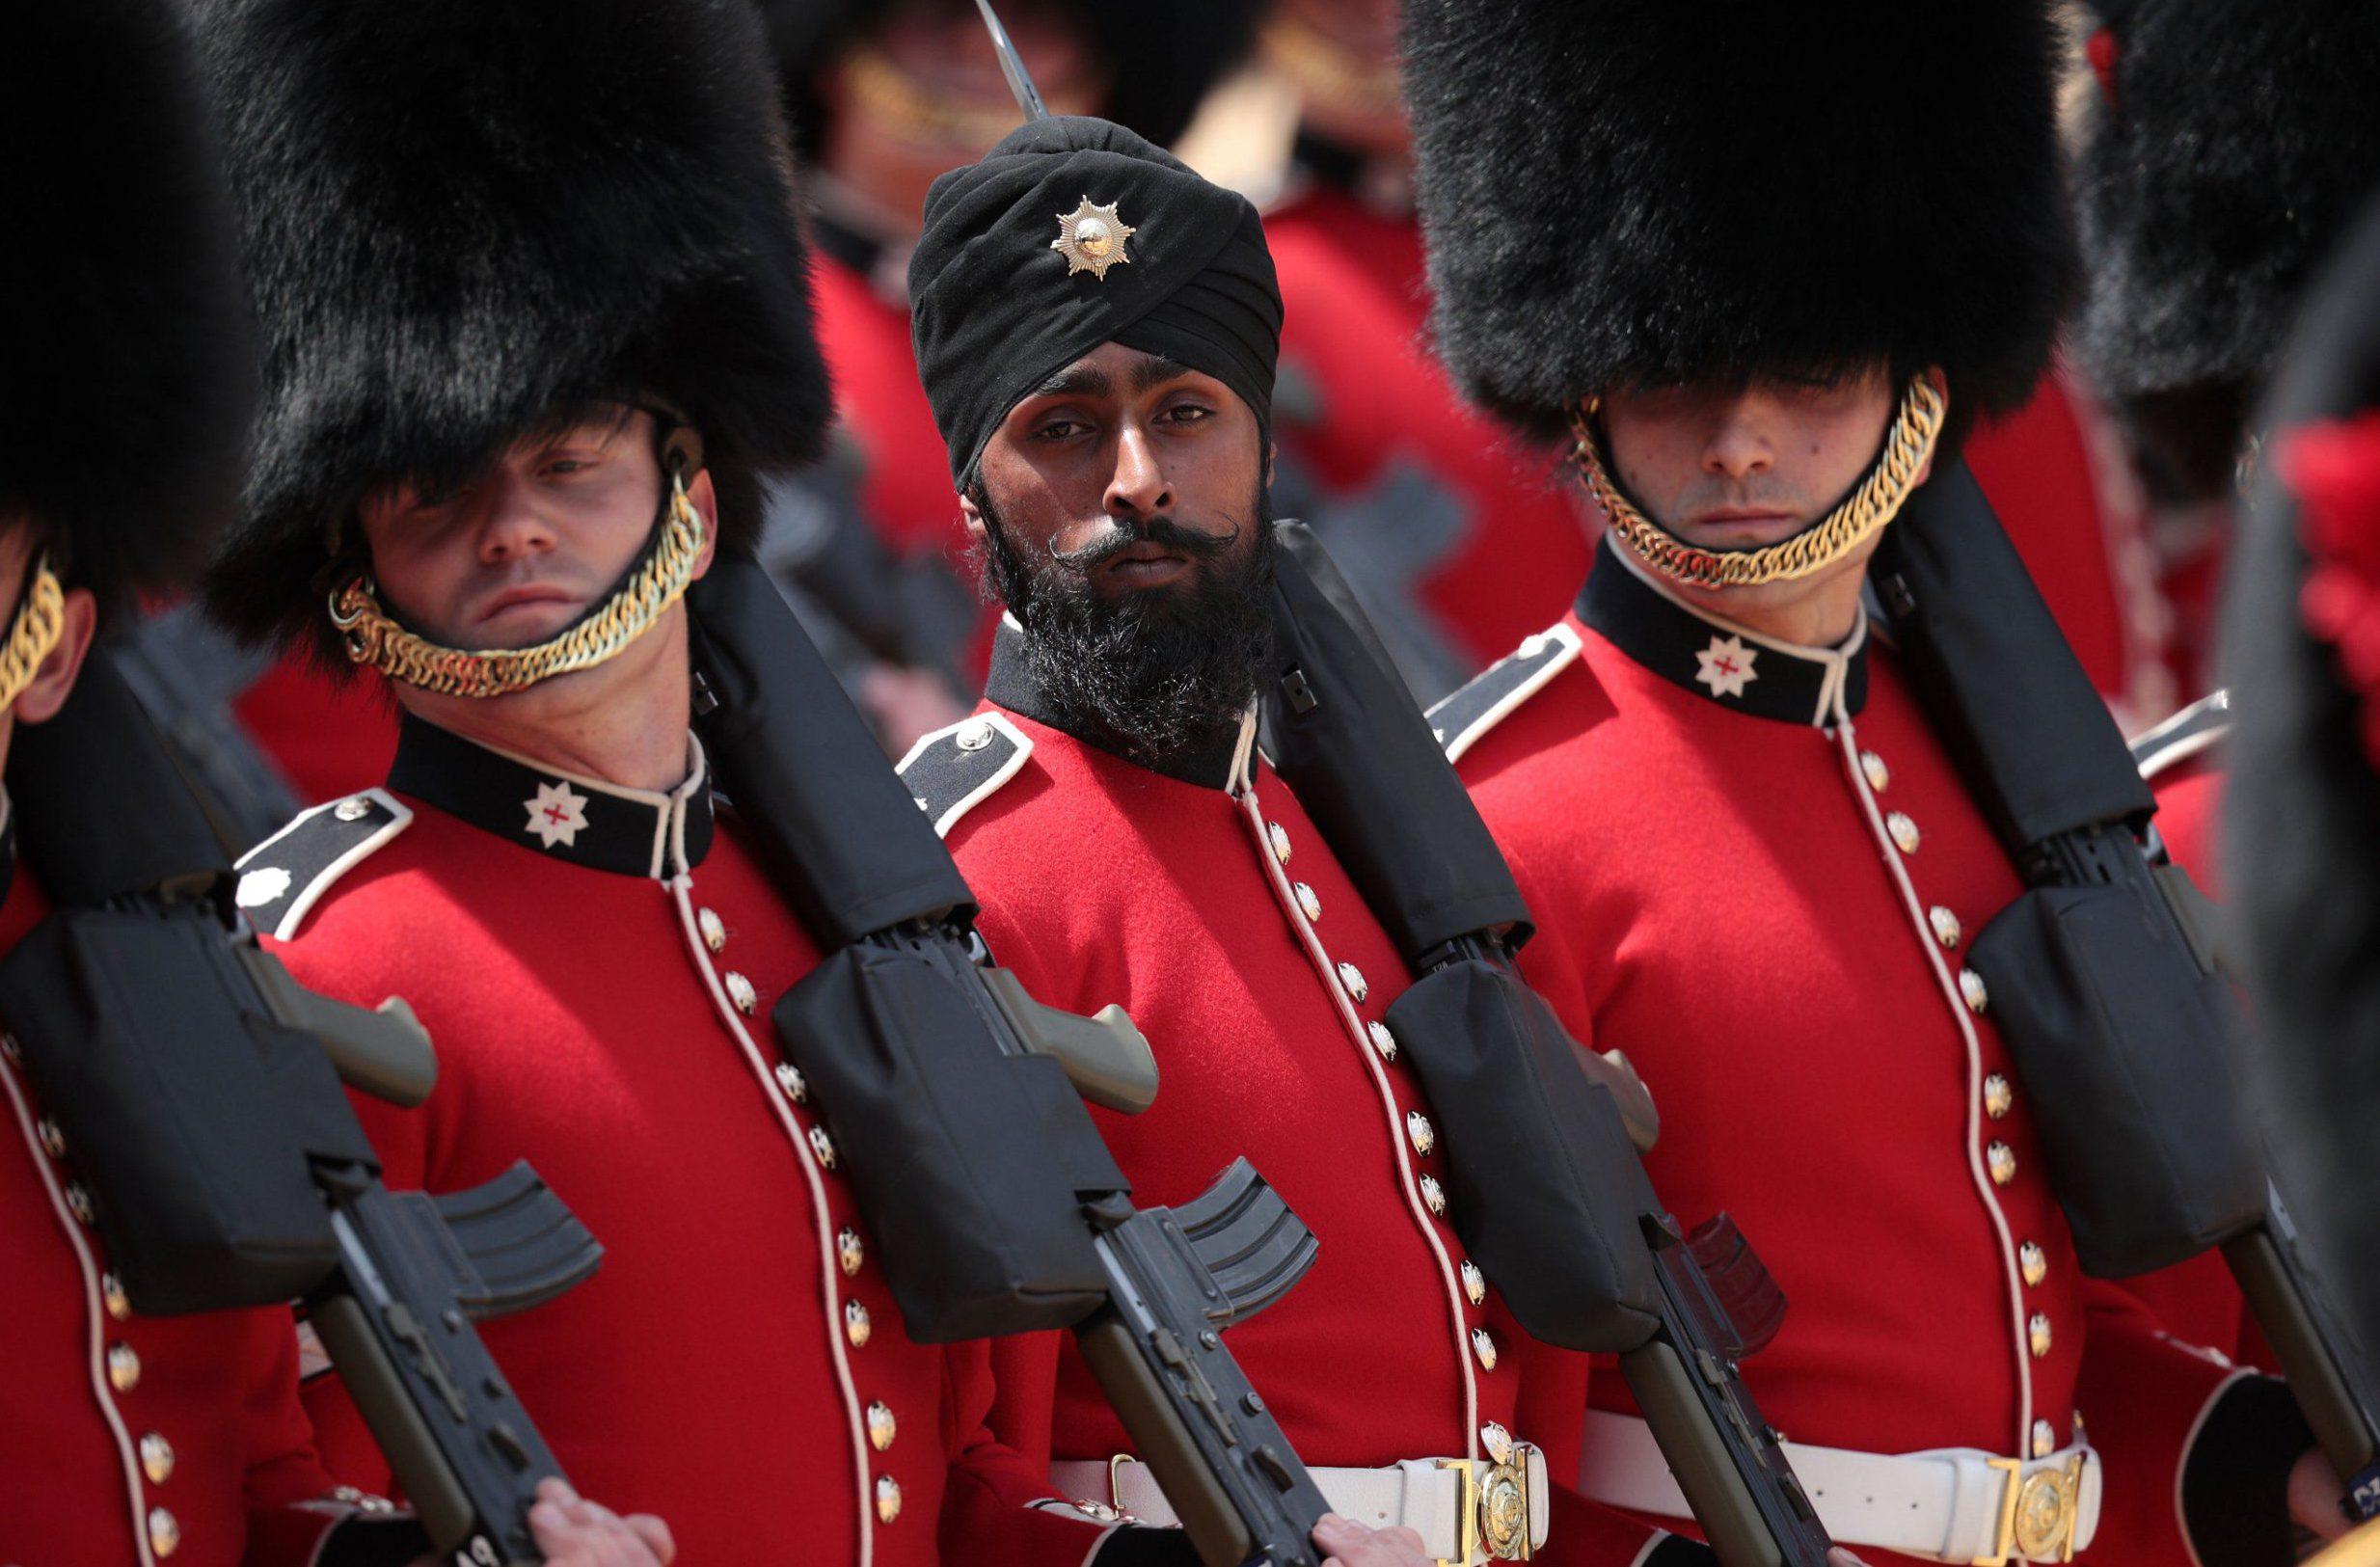 Sikh soldier makes history wearing turban for Trooping the Colour